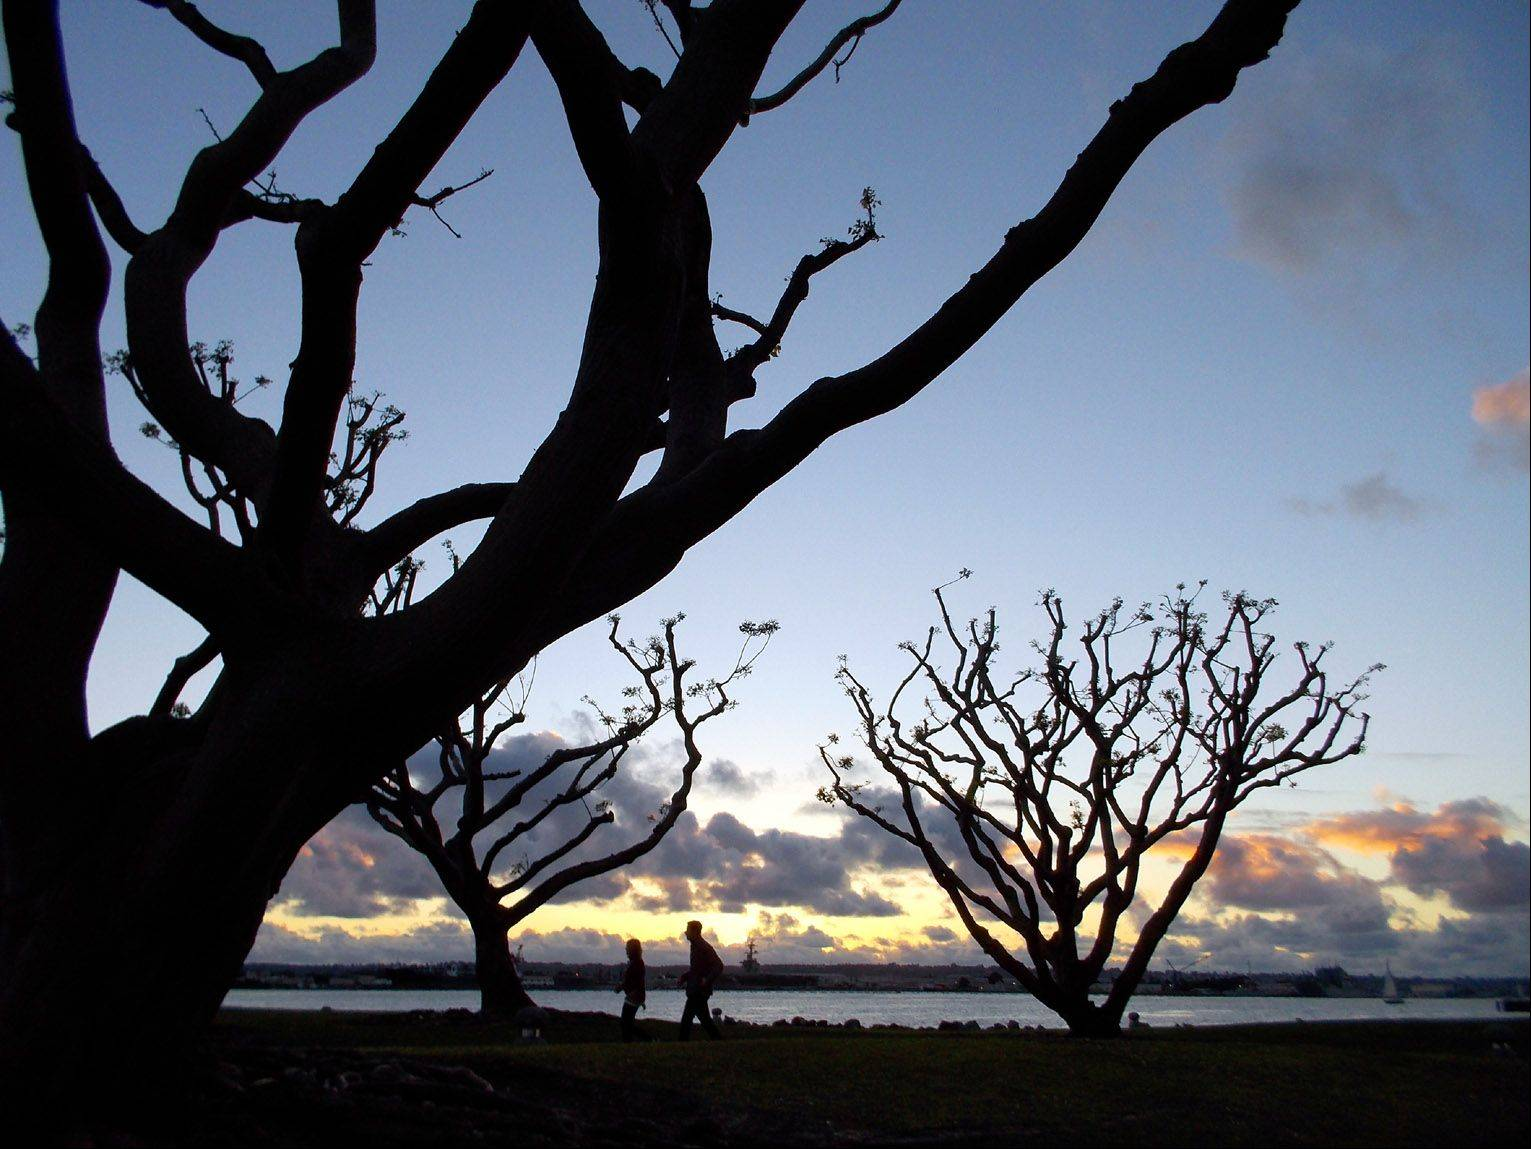 These sculptural coral trees provide an interesting silhouette against the sunset at Seaport Village in San Diego.